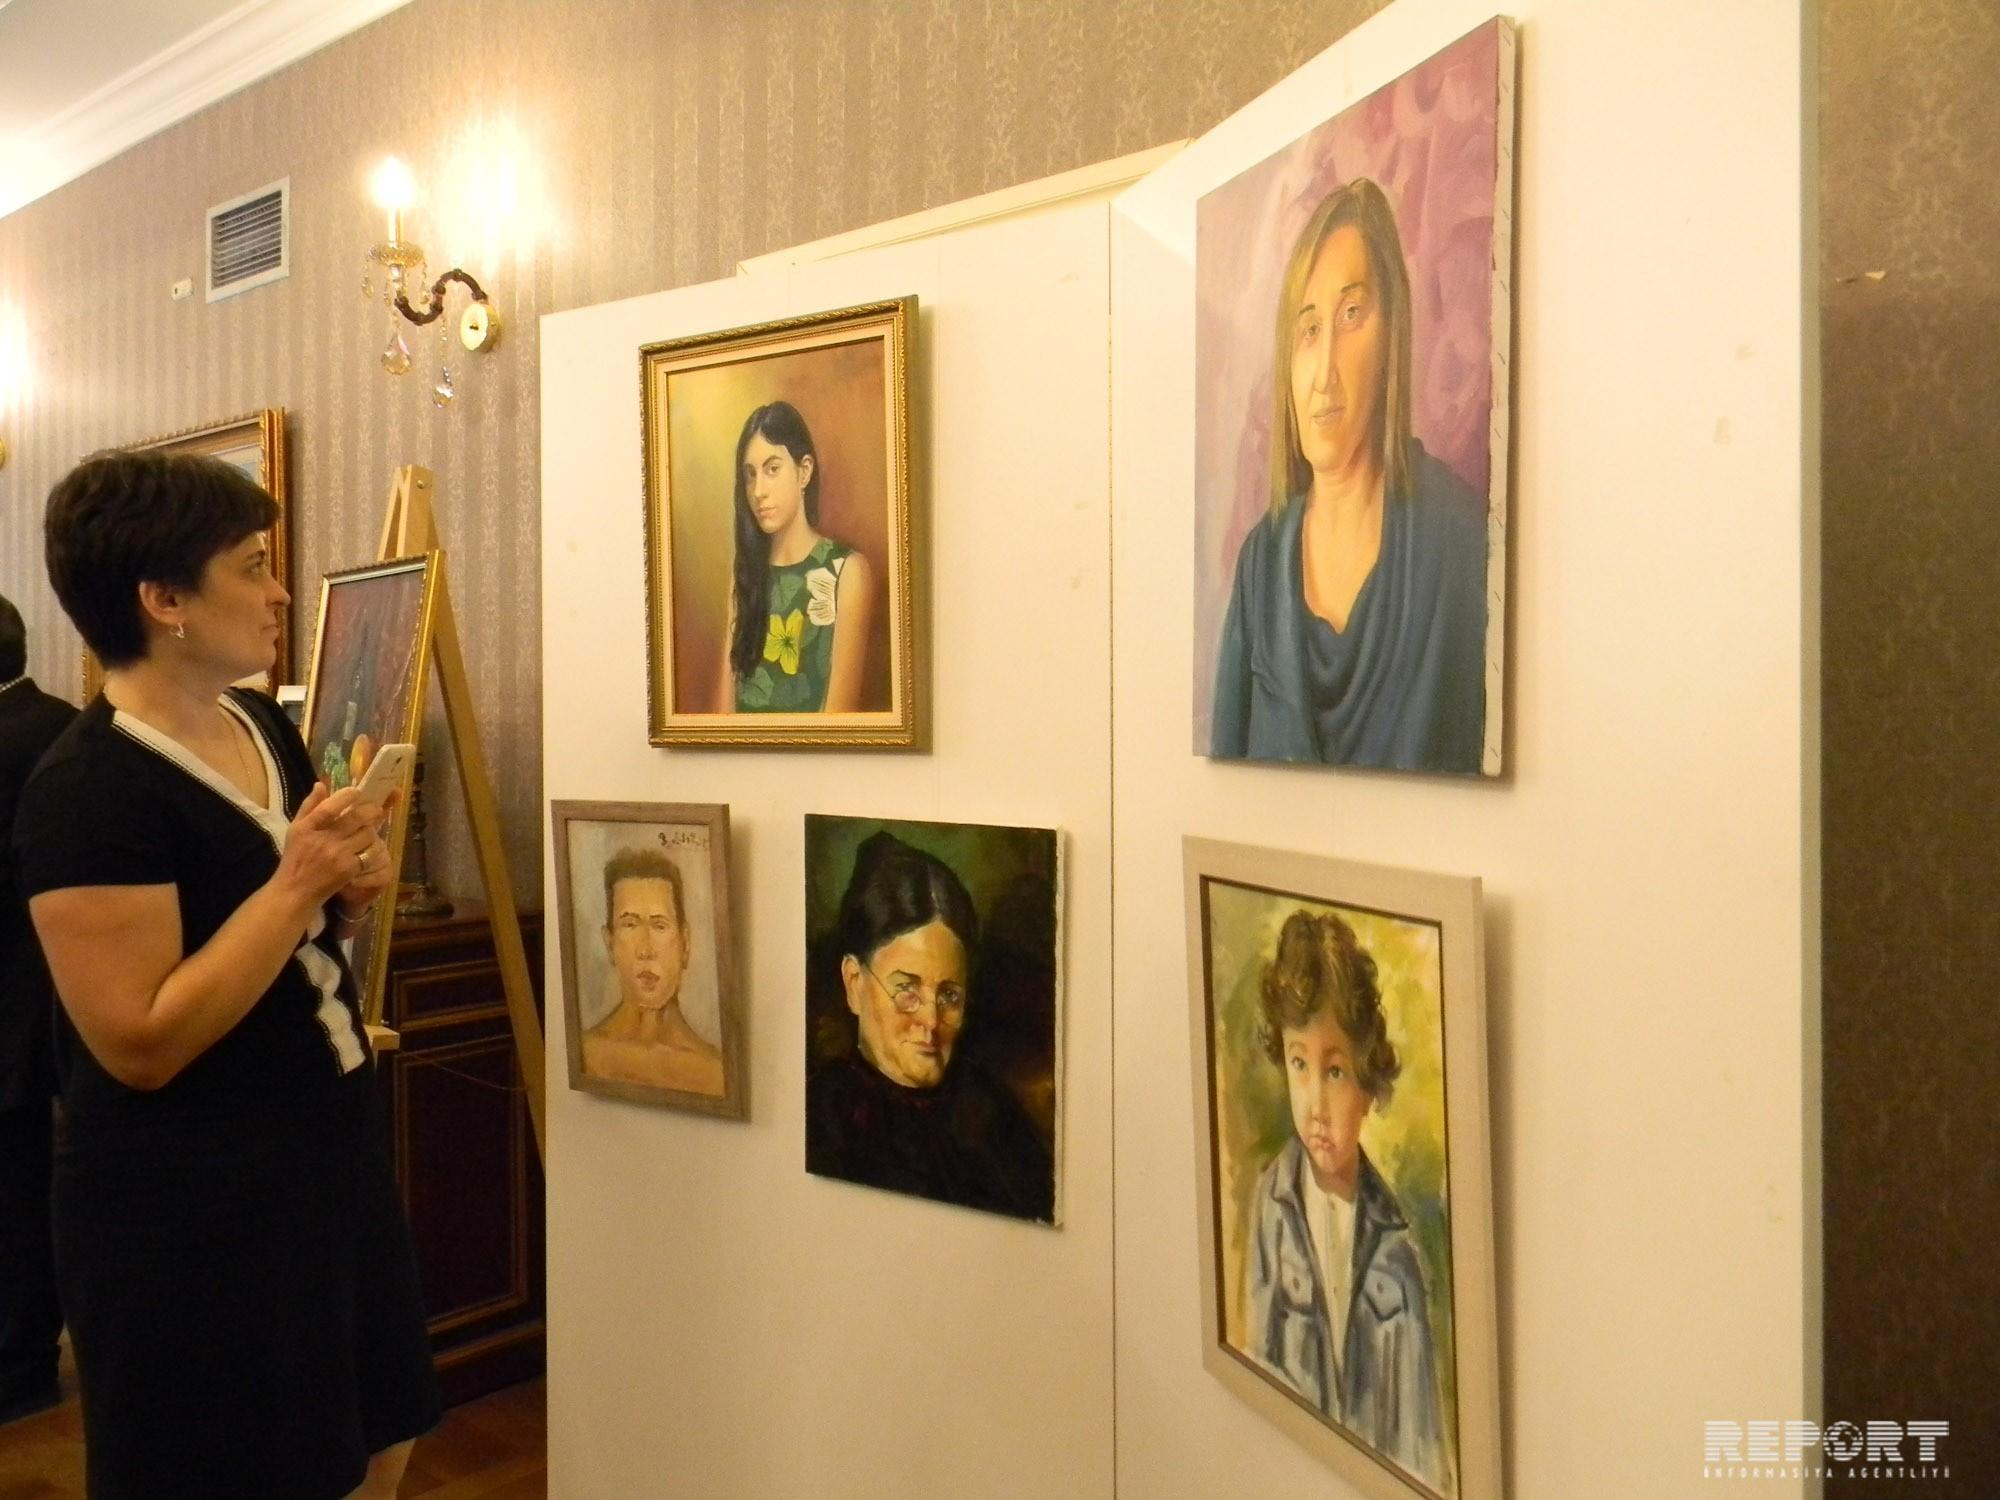 First personal exhibition of Azerbaijani young artist opened in Tbilisi